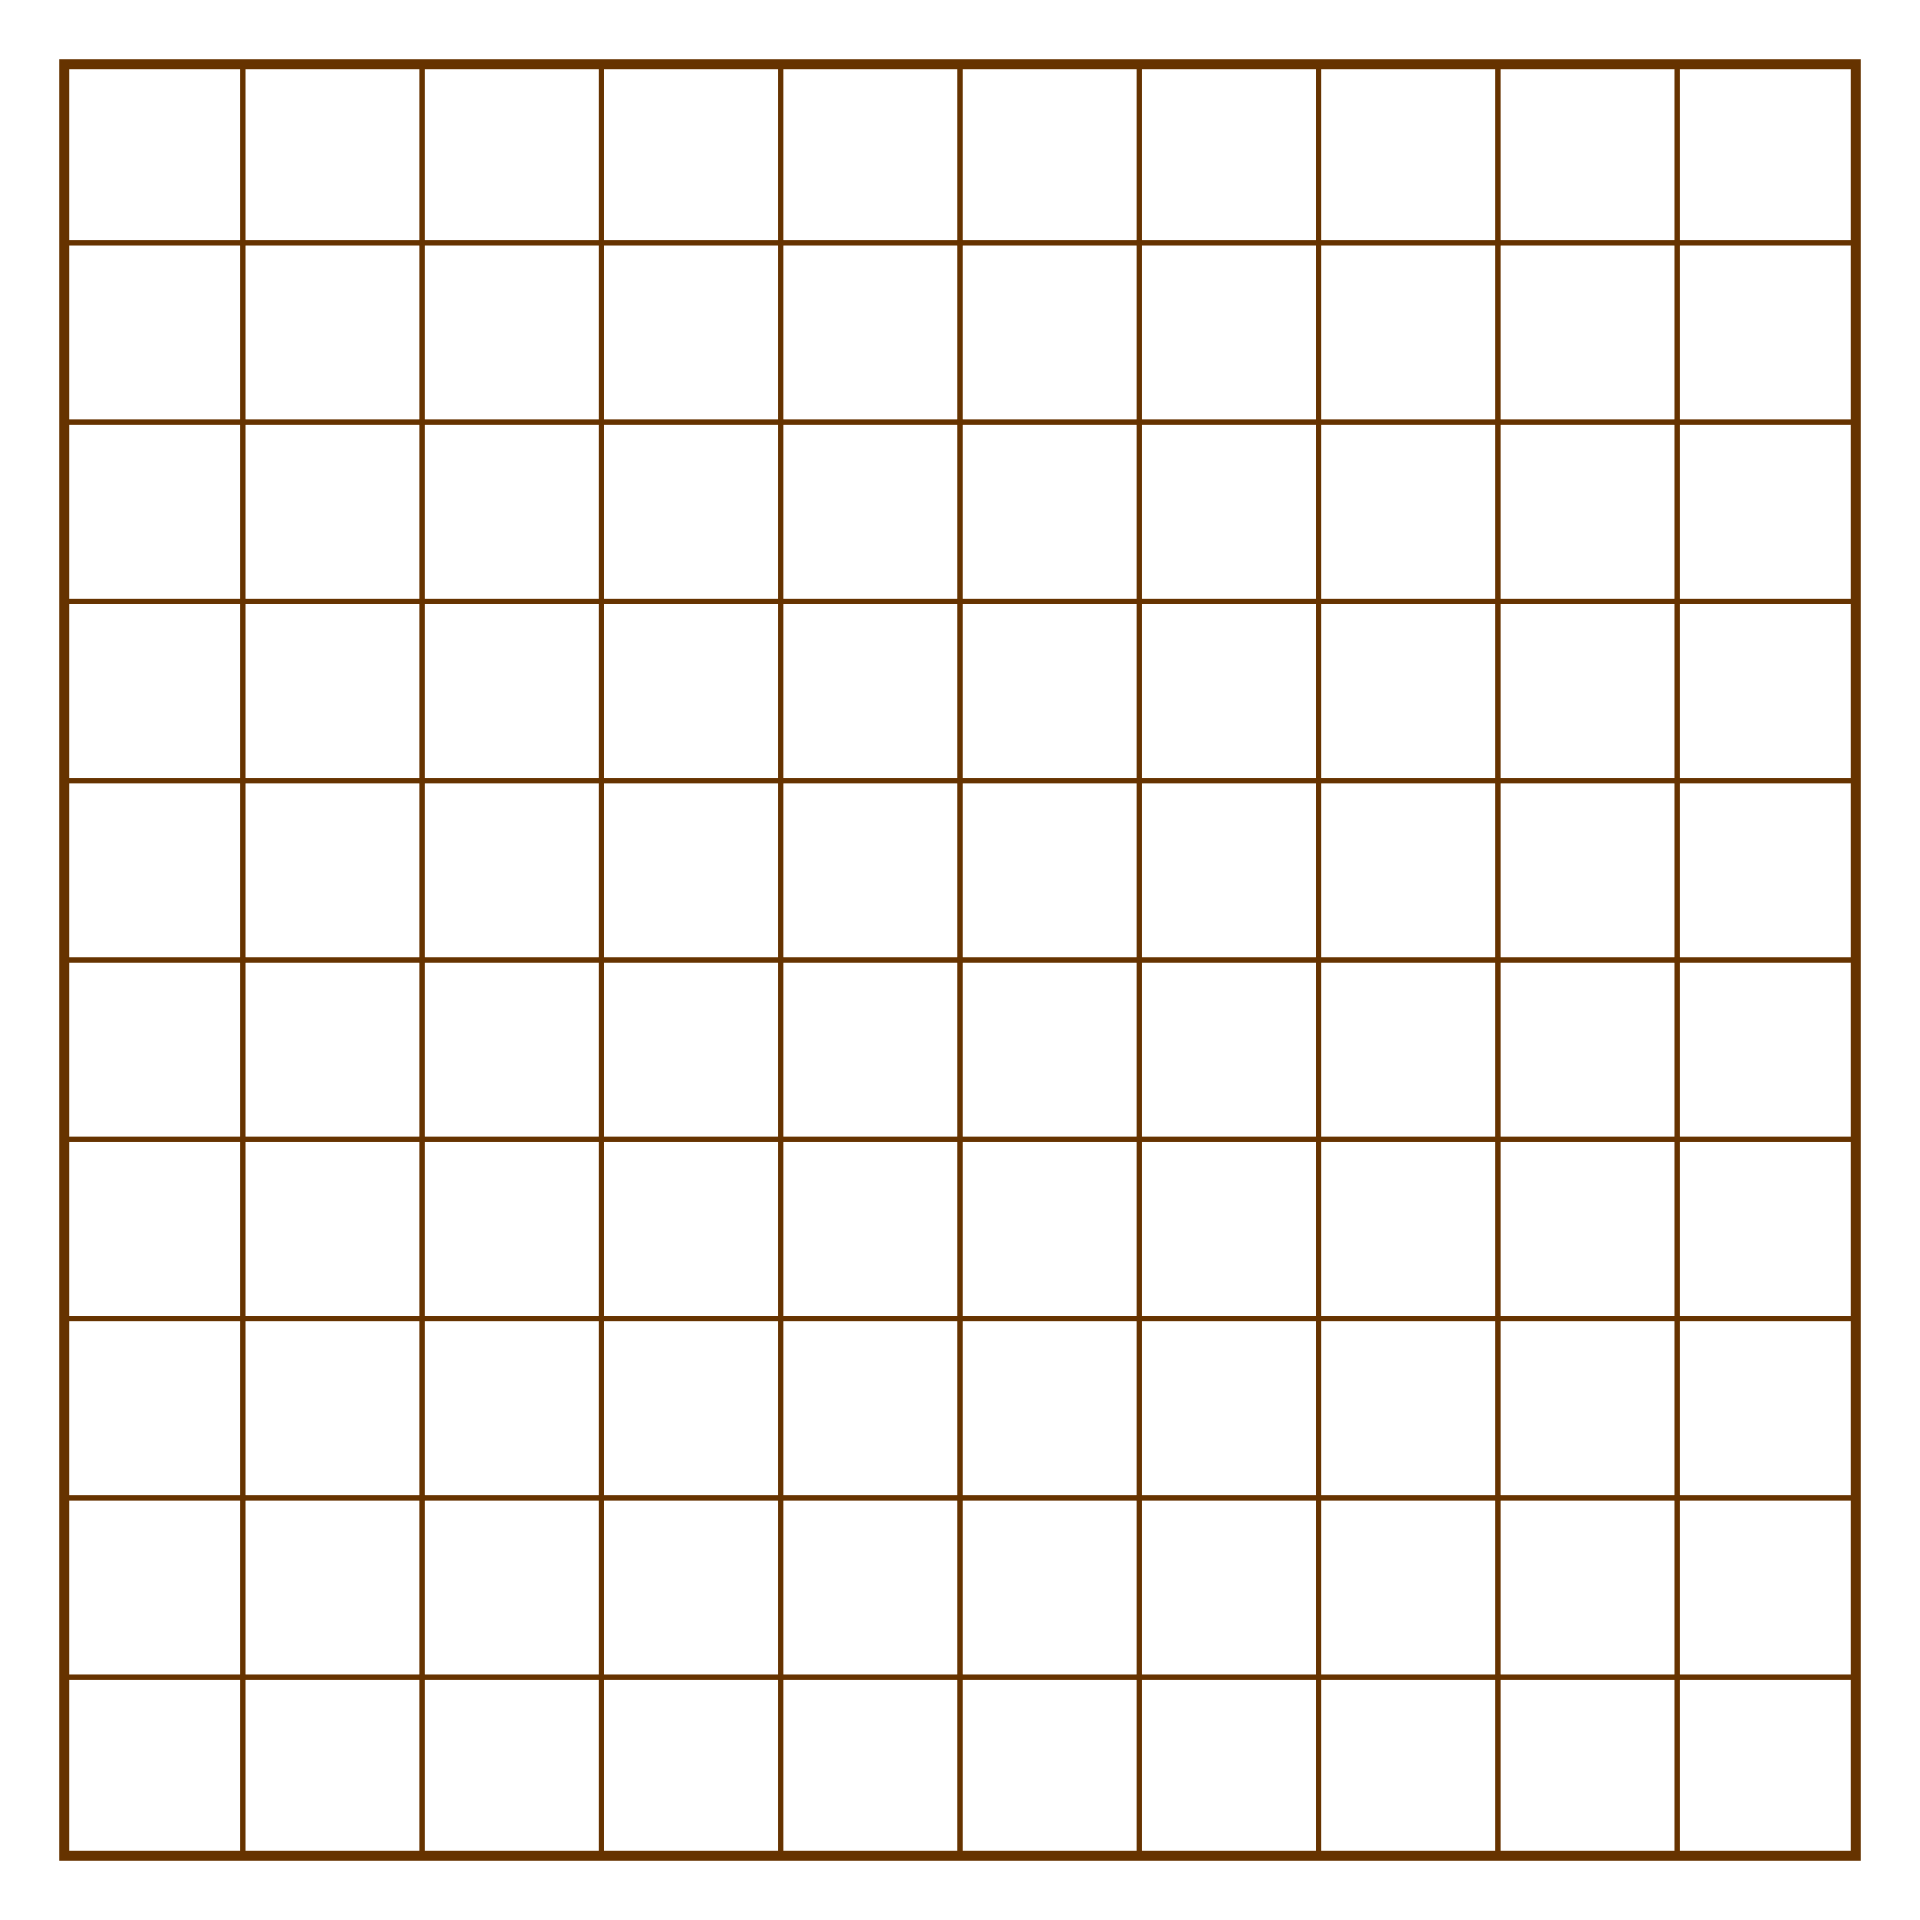 7 Best Images of Printable Grids Squares - Printable Blank ...